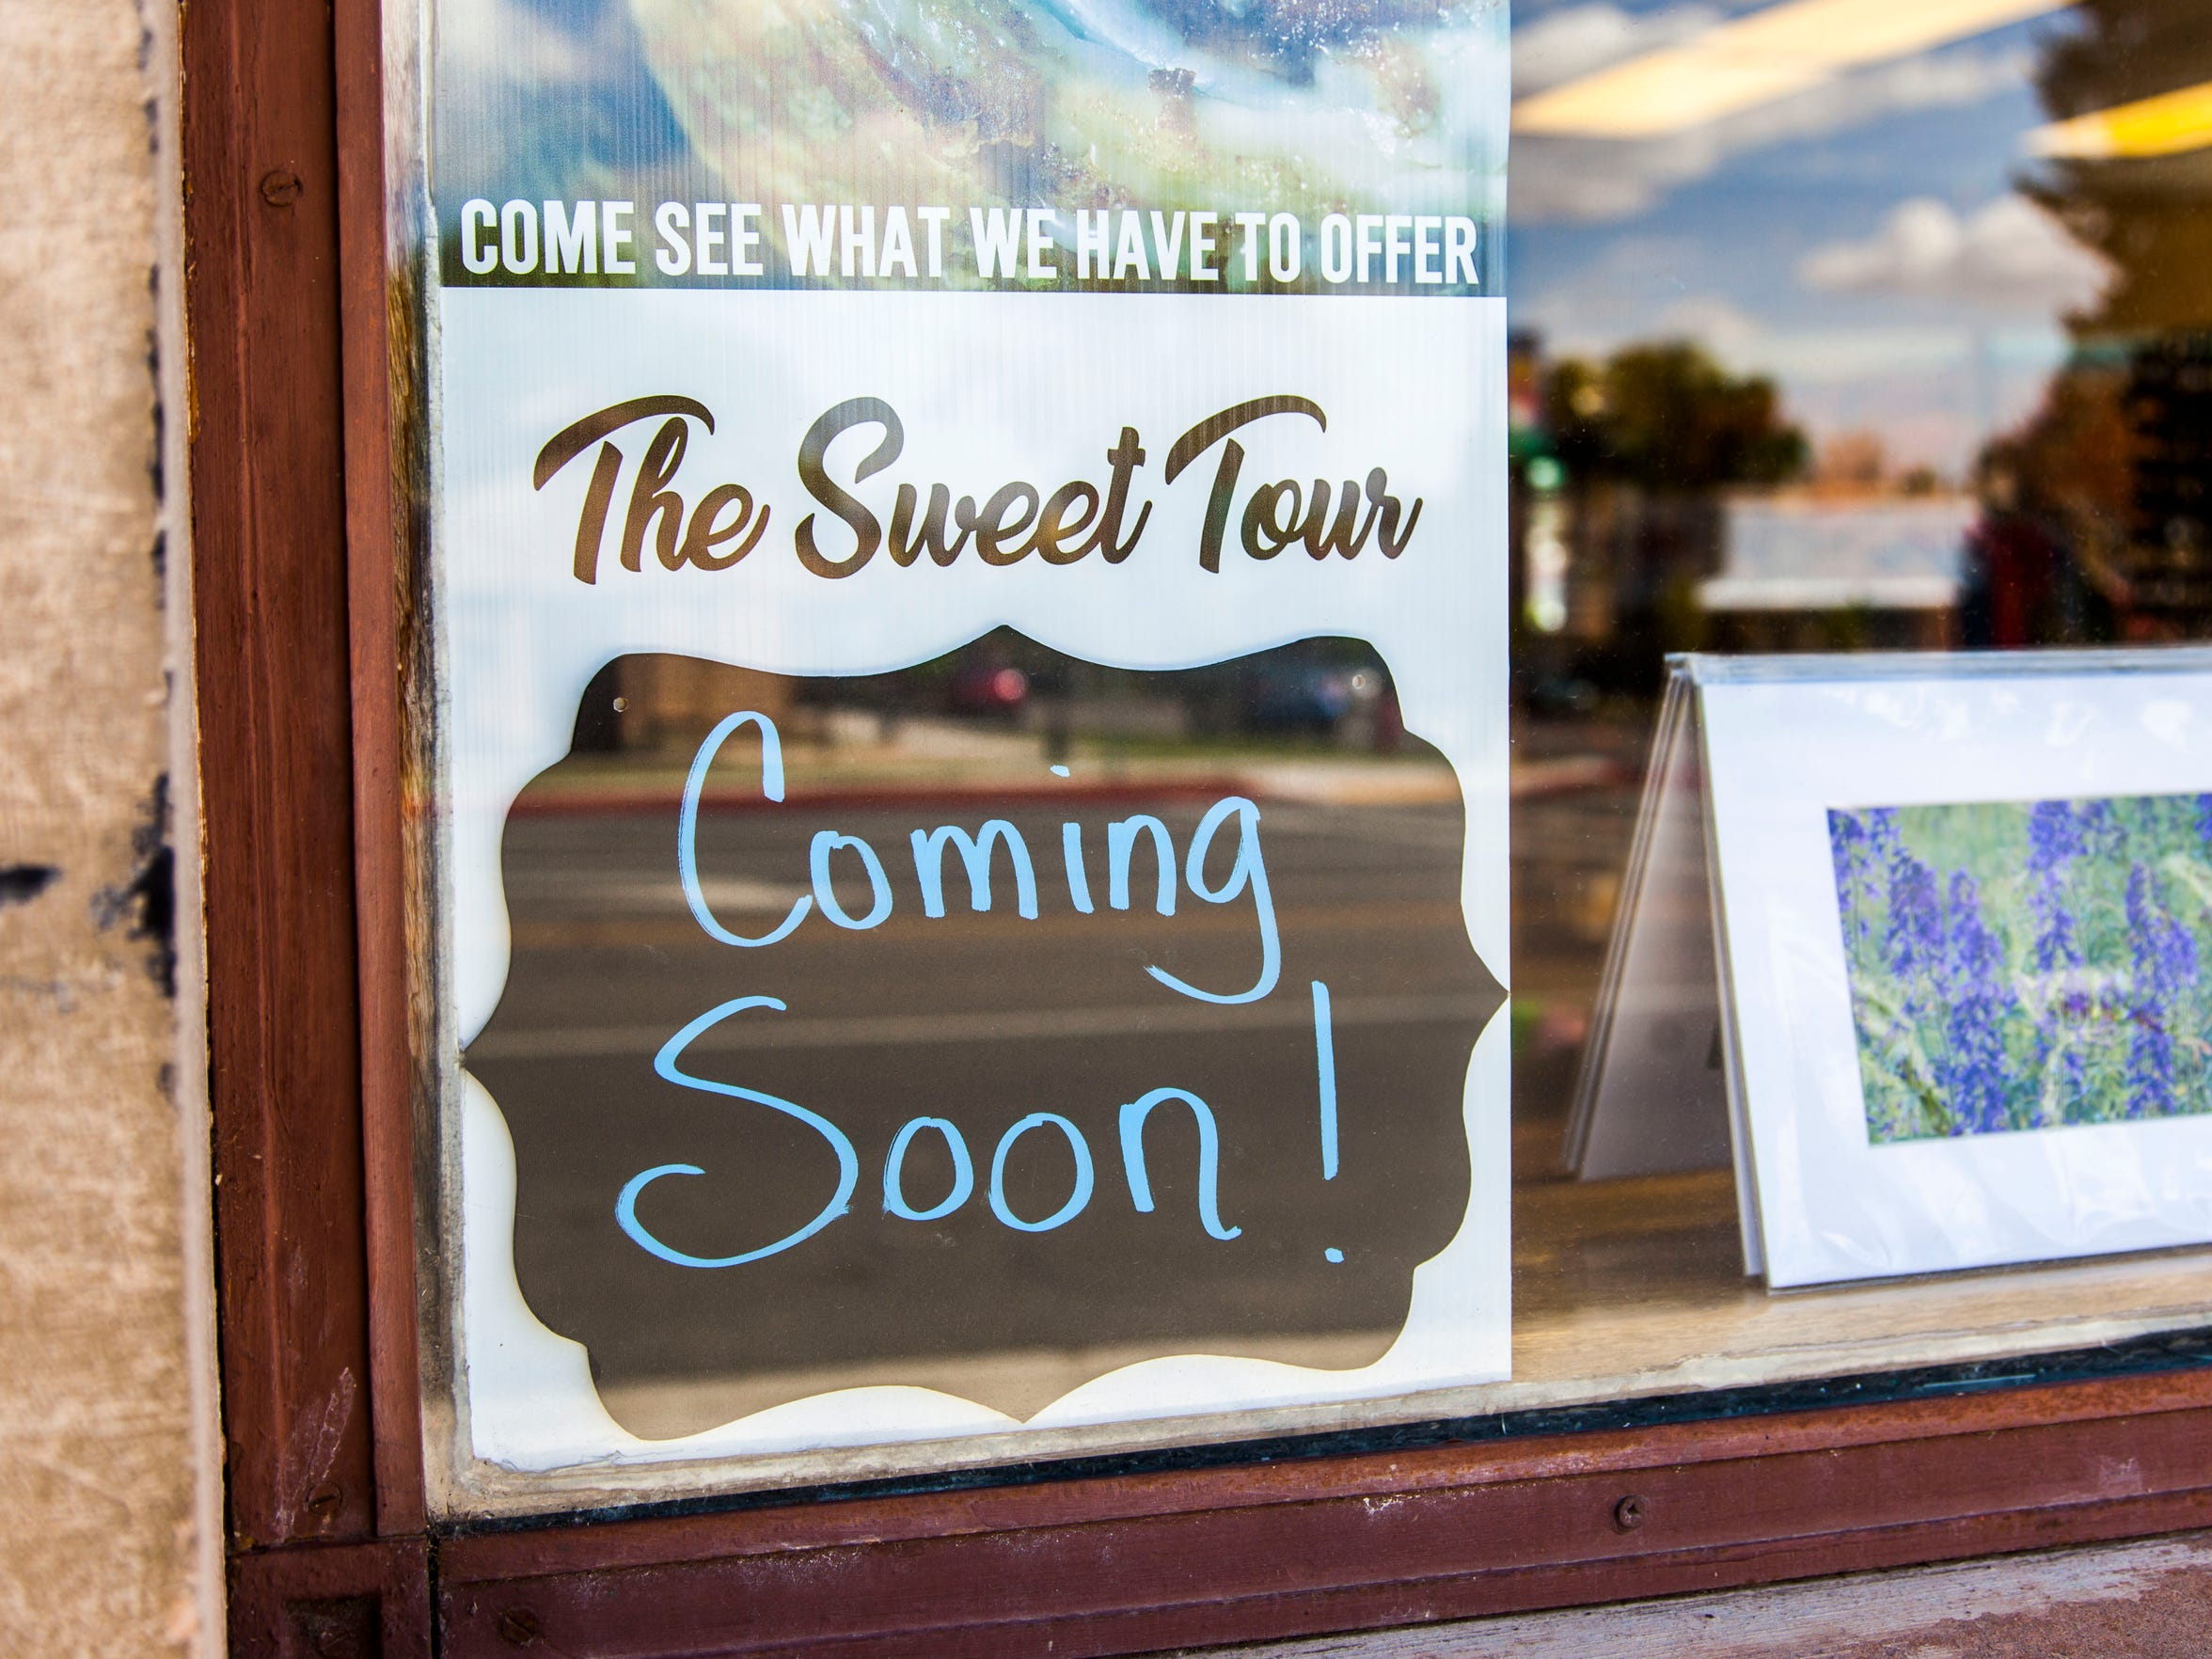 A sign for The Sweet Tour in sits in a window at the